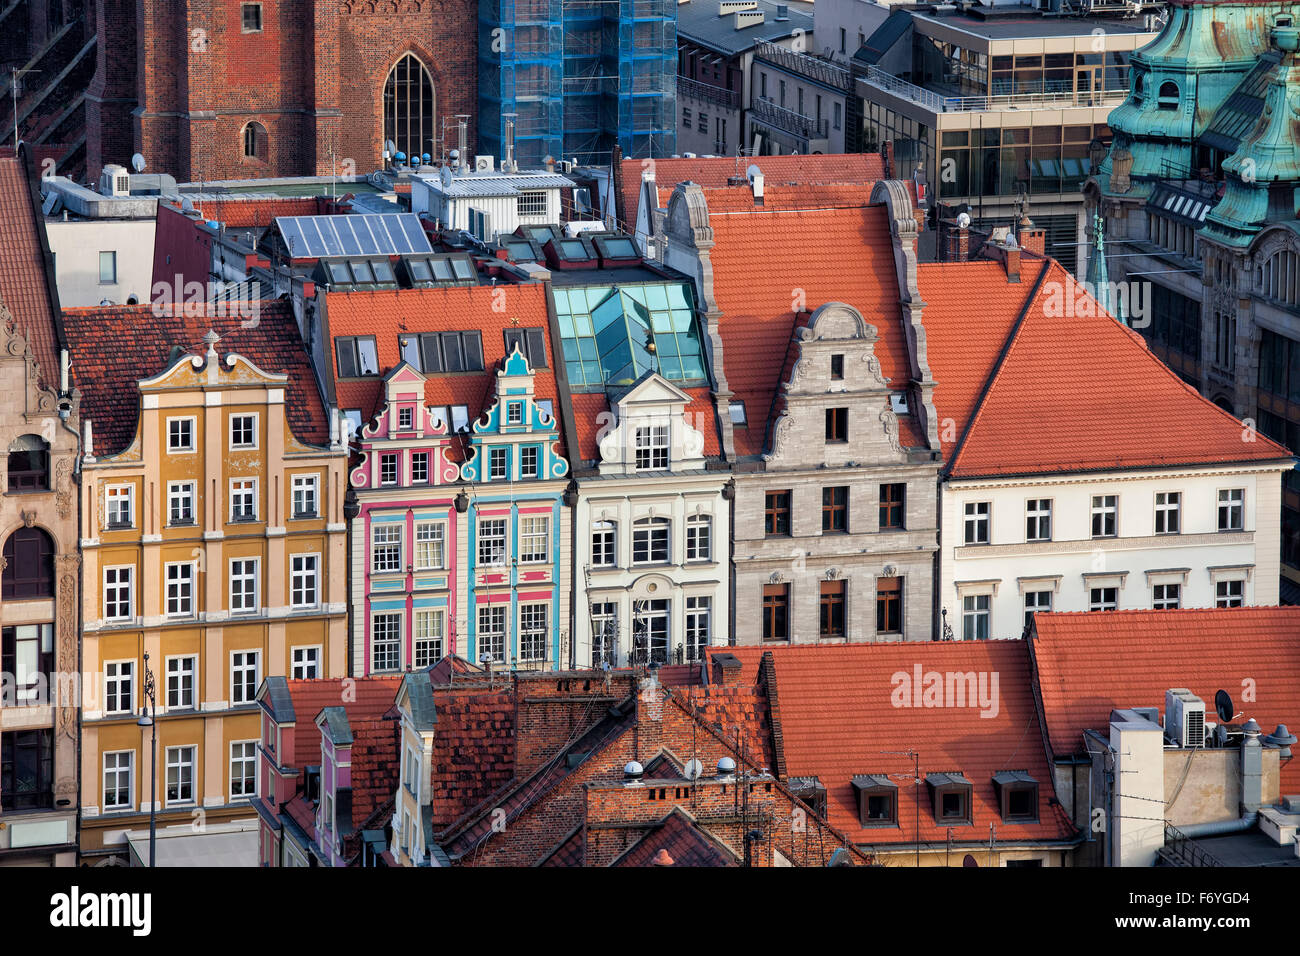 City of Wroclaw in Poland, historic tenement houses in the Old Town. - Stock Image